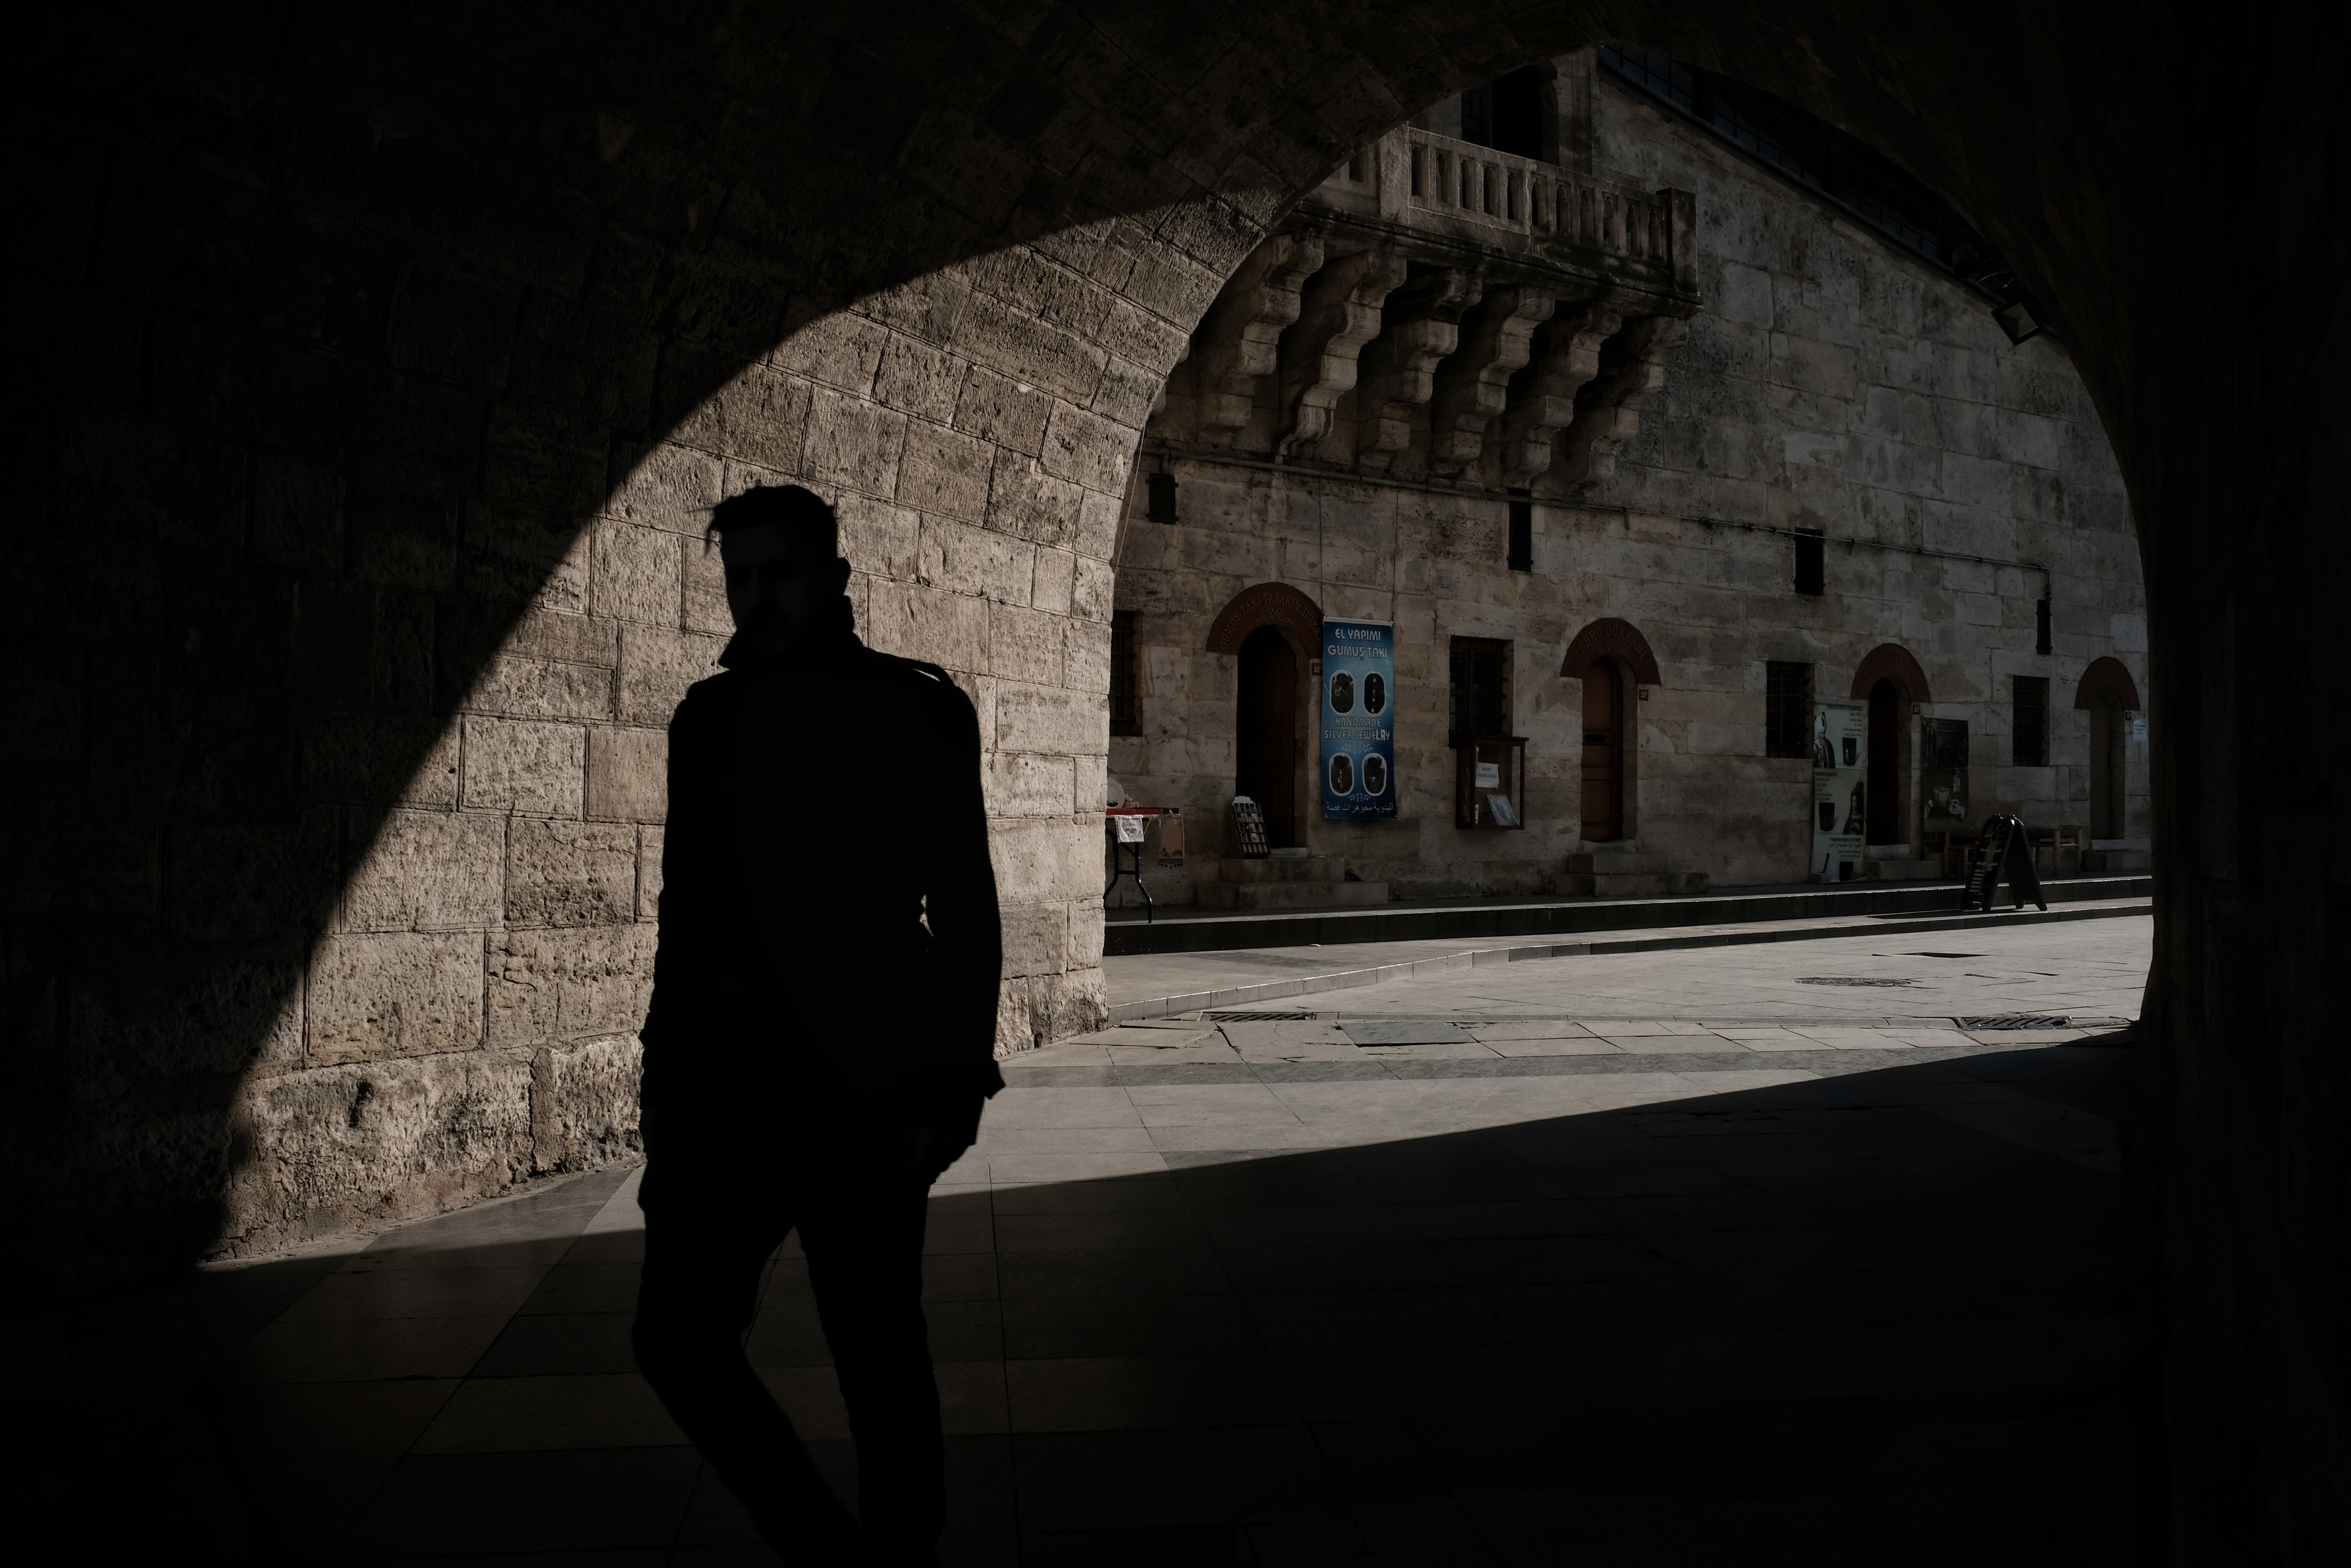 silhouette of man inside of tunnel during daytime